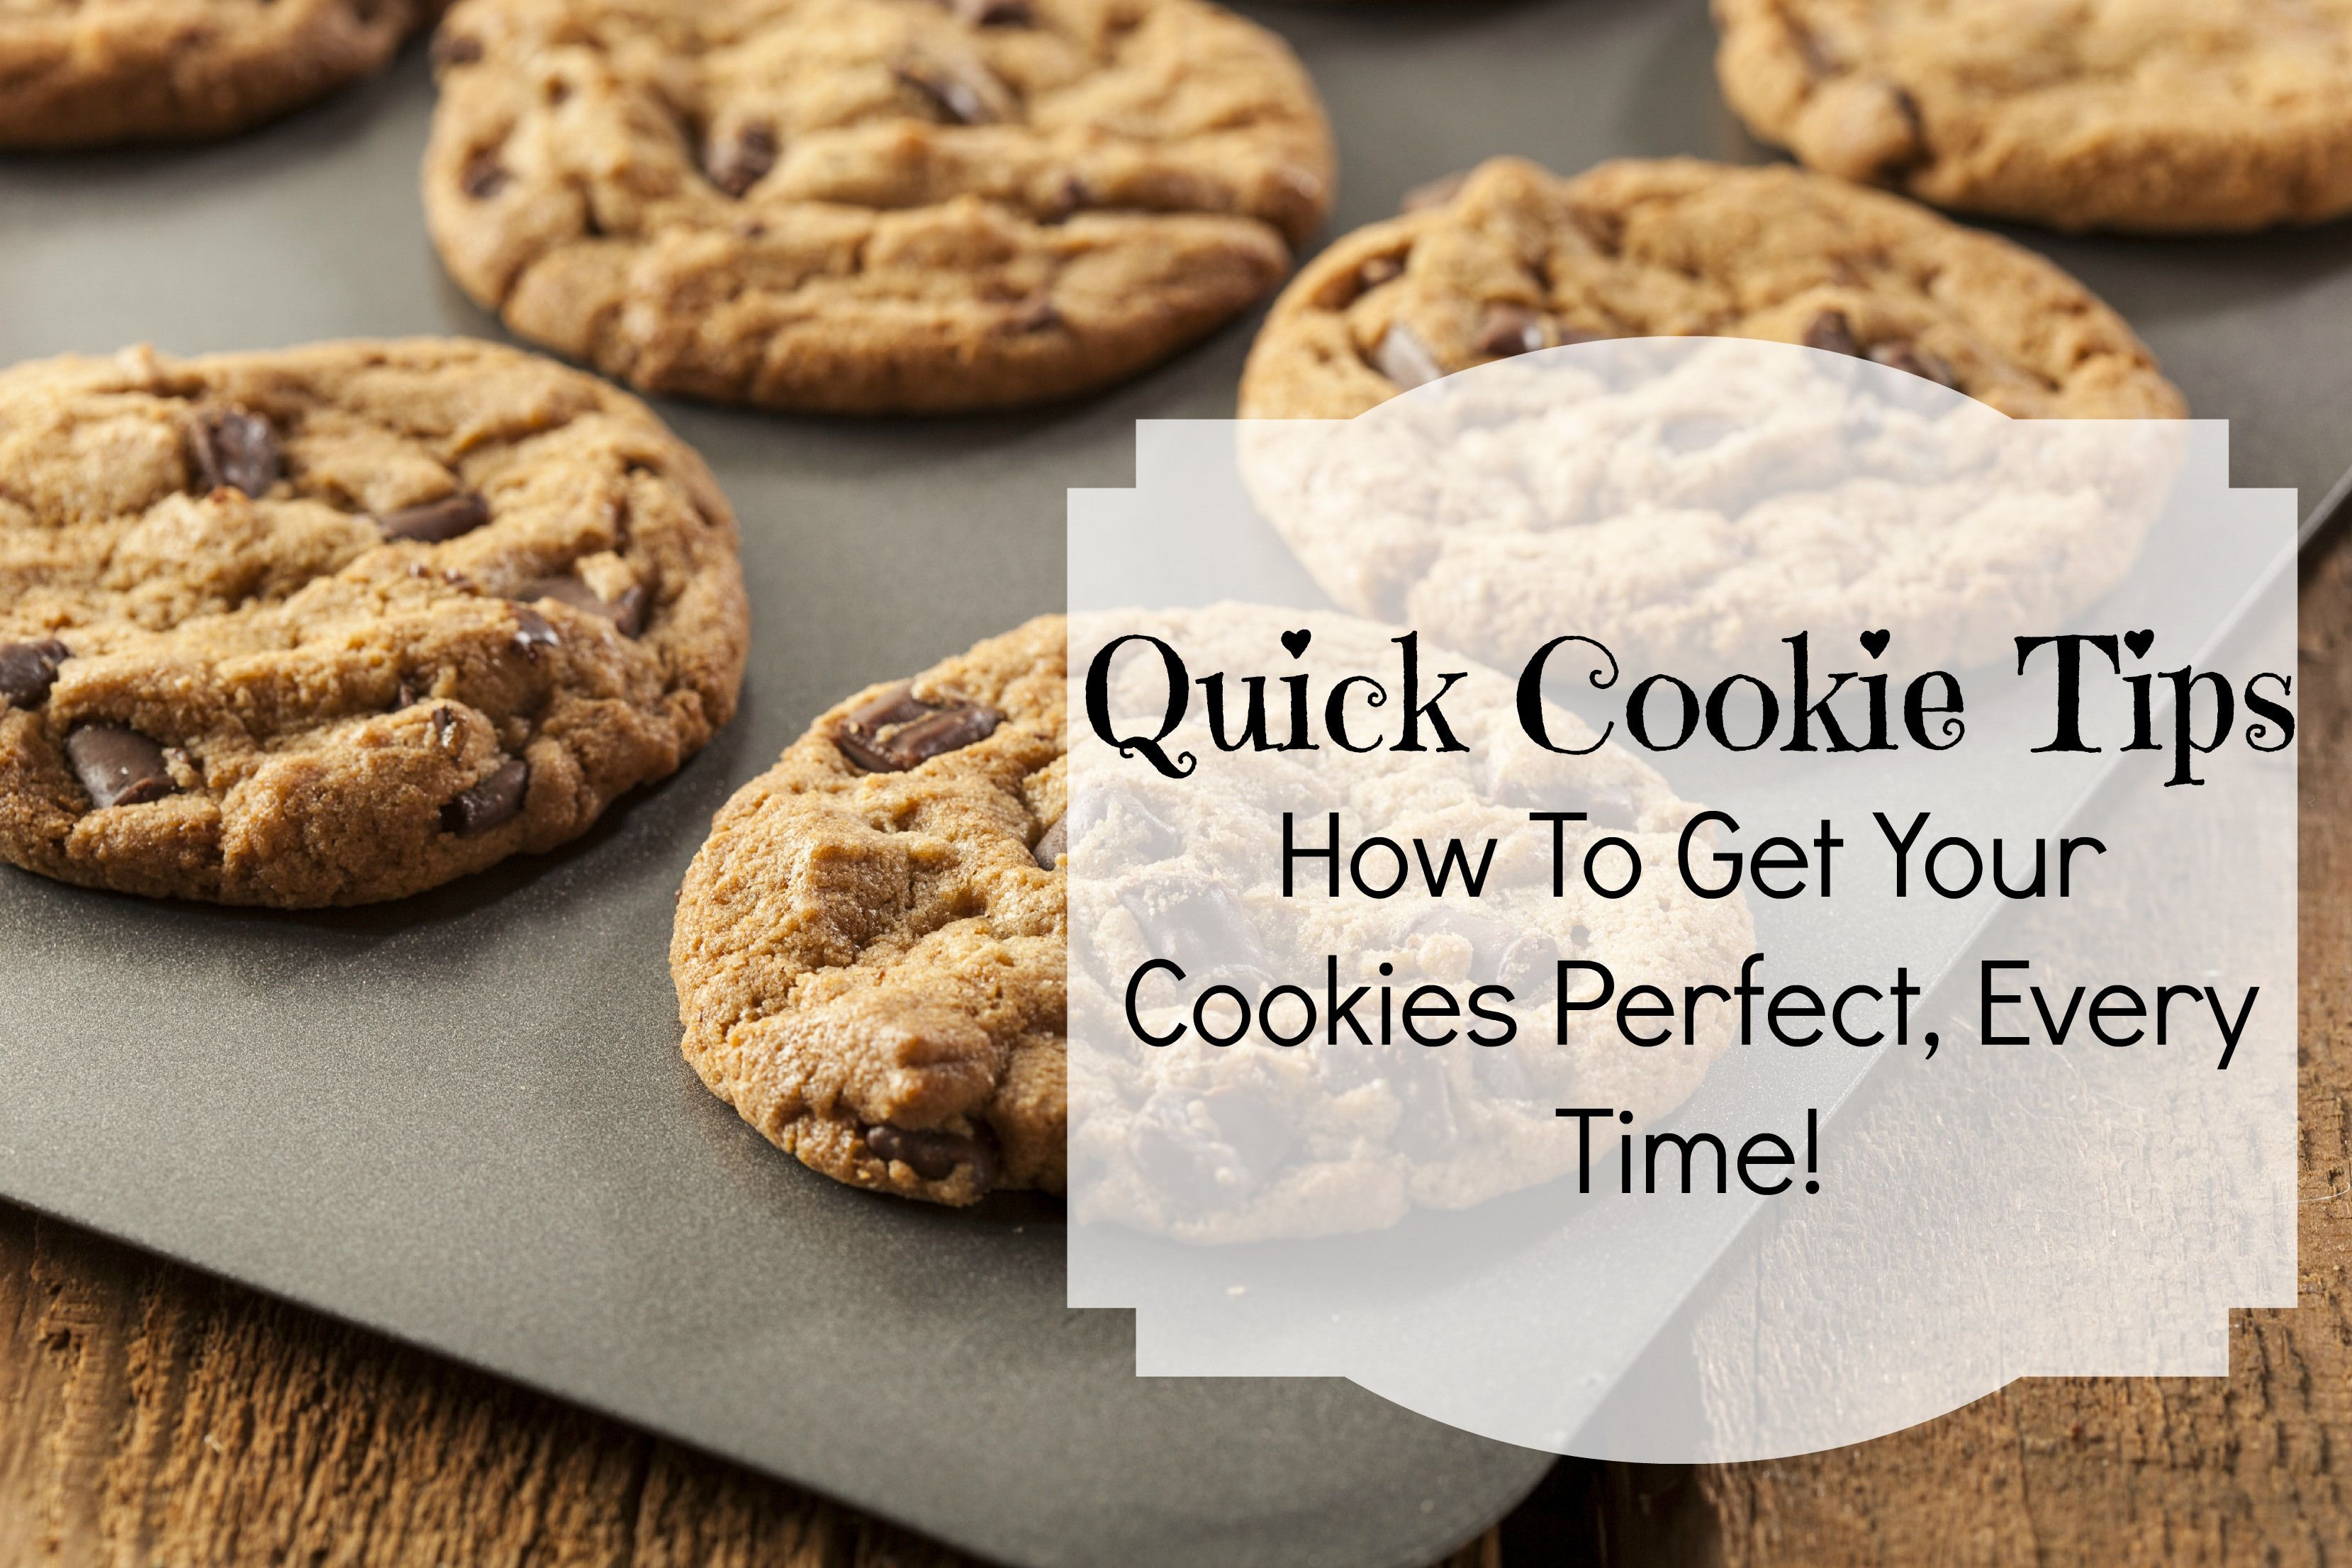 Quick Cookie Tips | How To Get Your Cookies Perfect, Every Time!